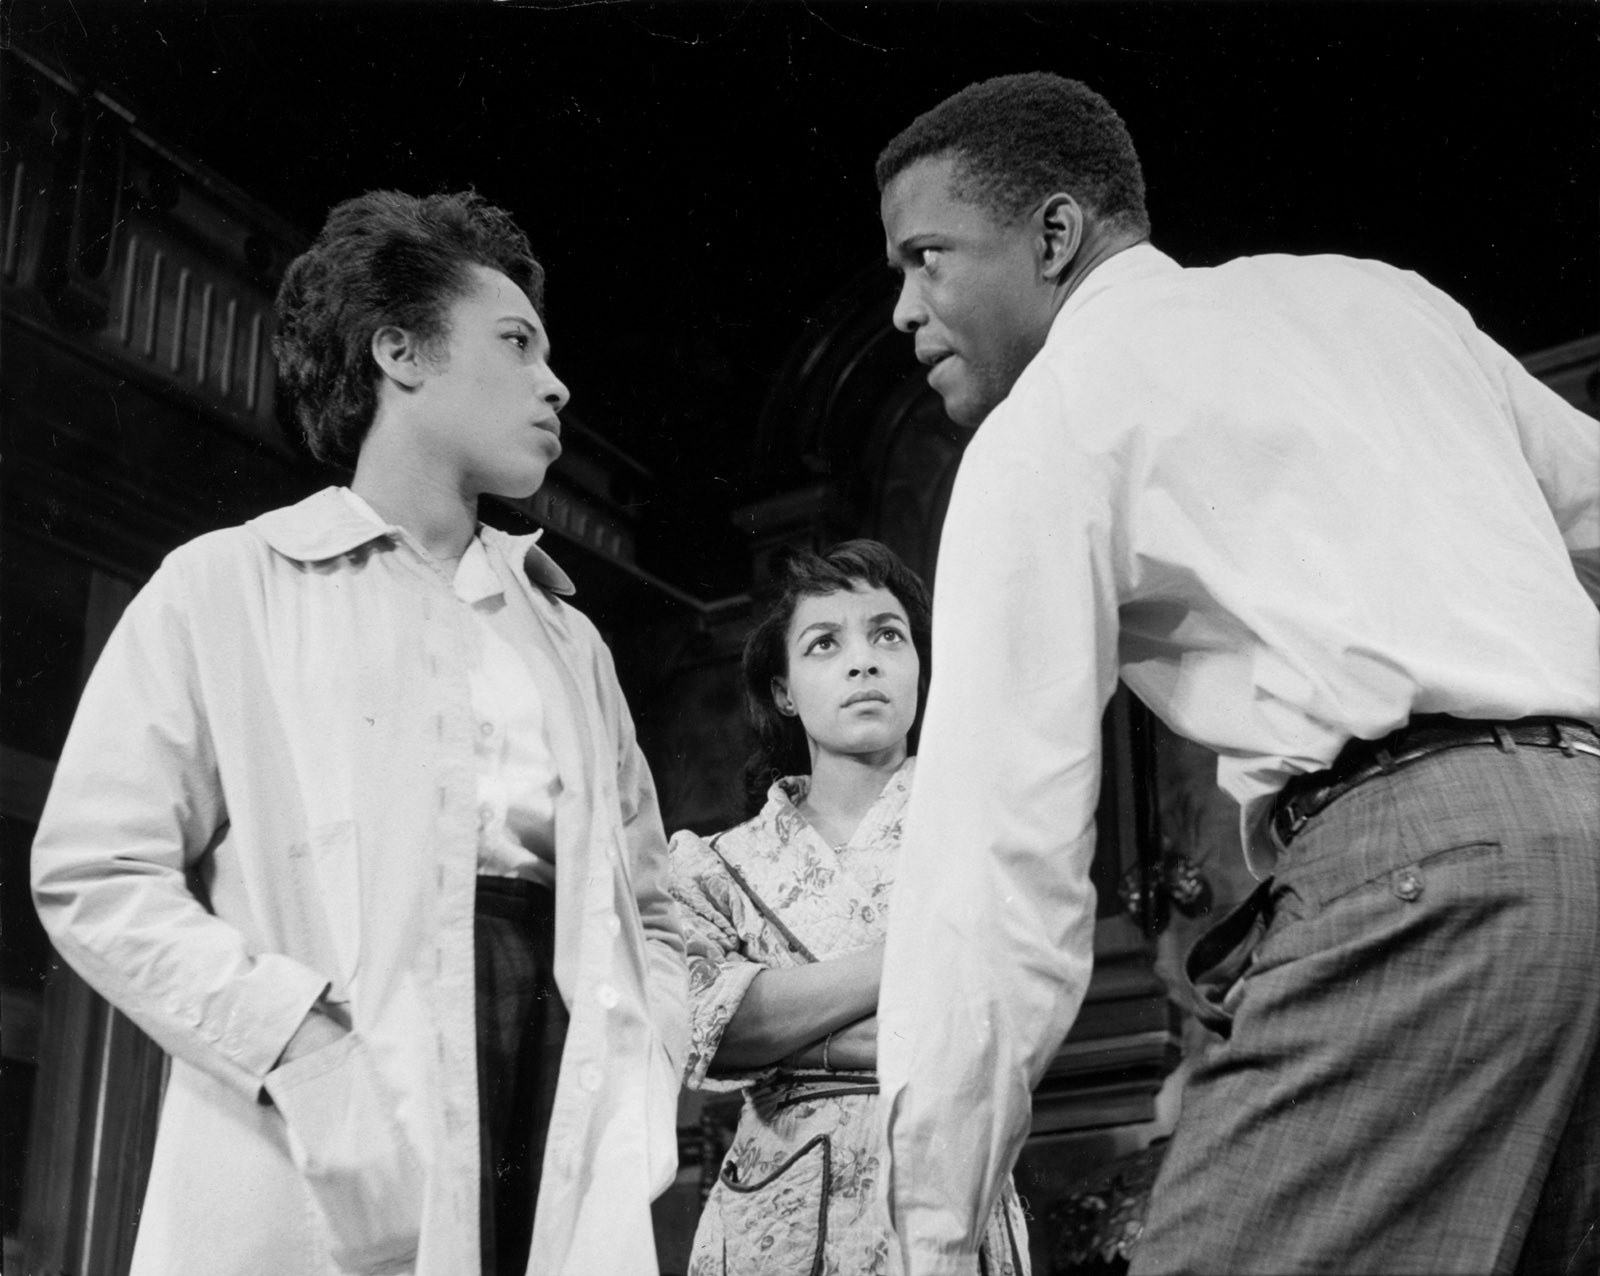 Diana Sands, Ruby Dee, and Sidney Poitier in the original Broadway production of A Raisin in the Sun